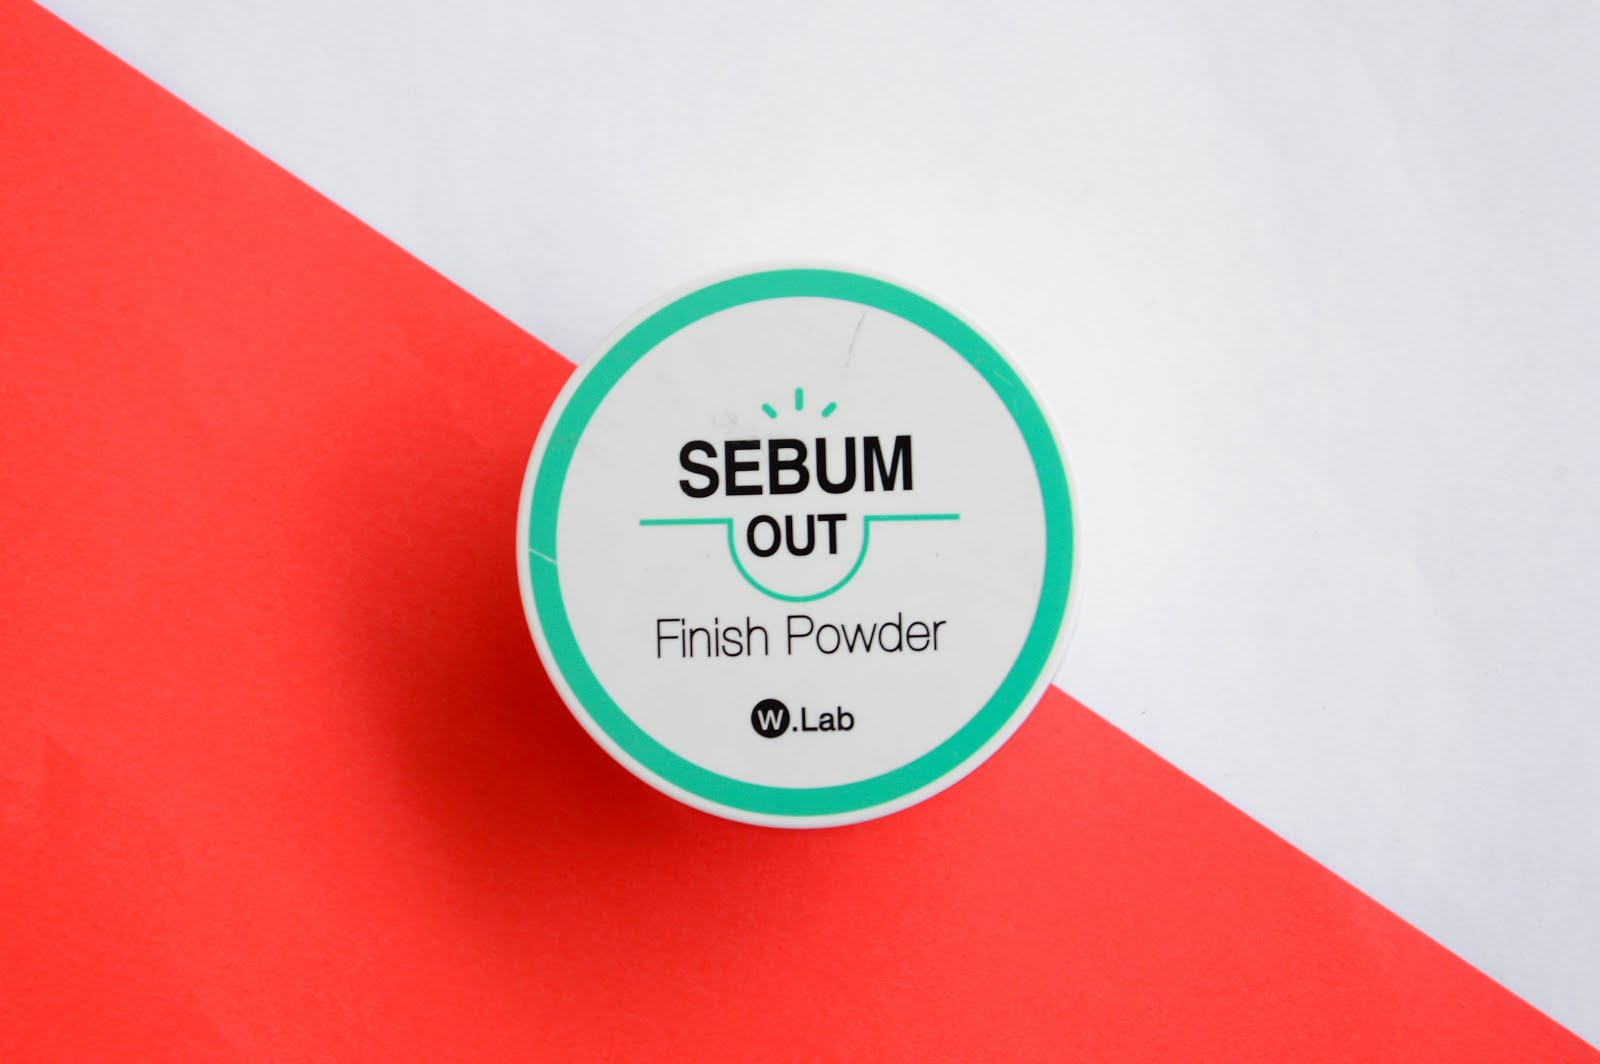 W.Lab Sebum Out Finish Powder Review